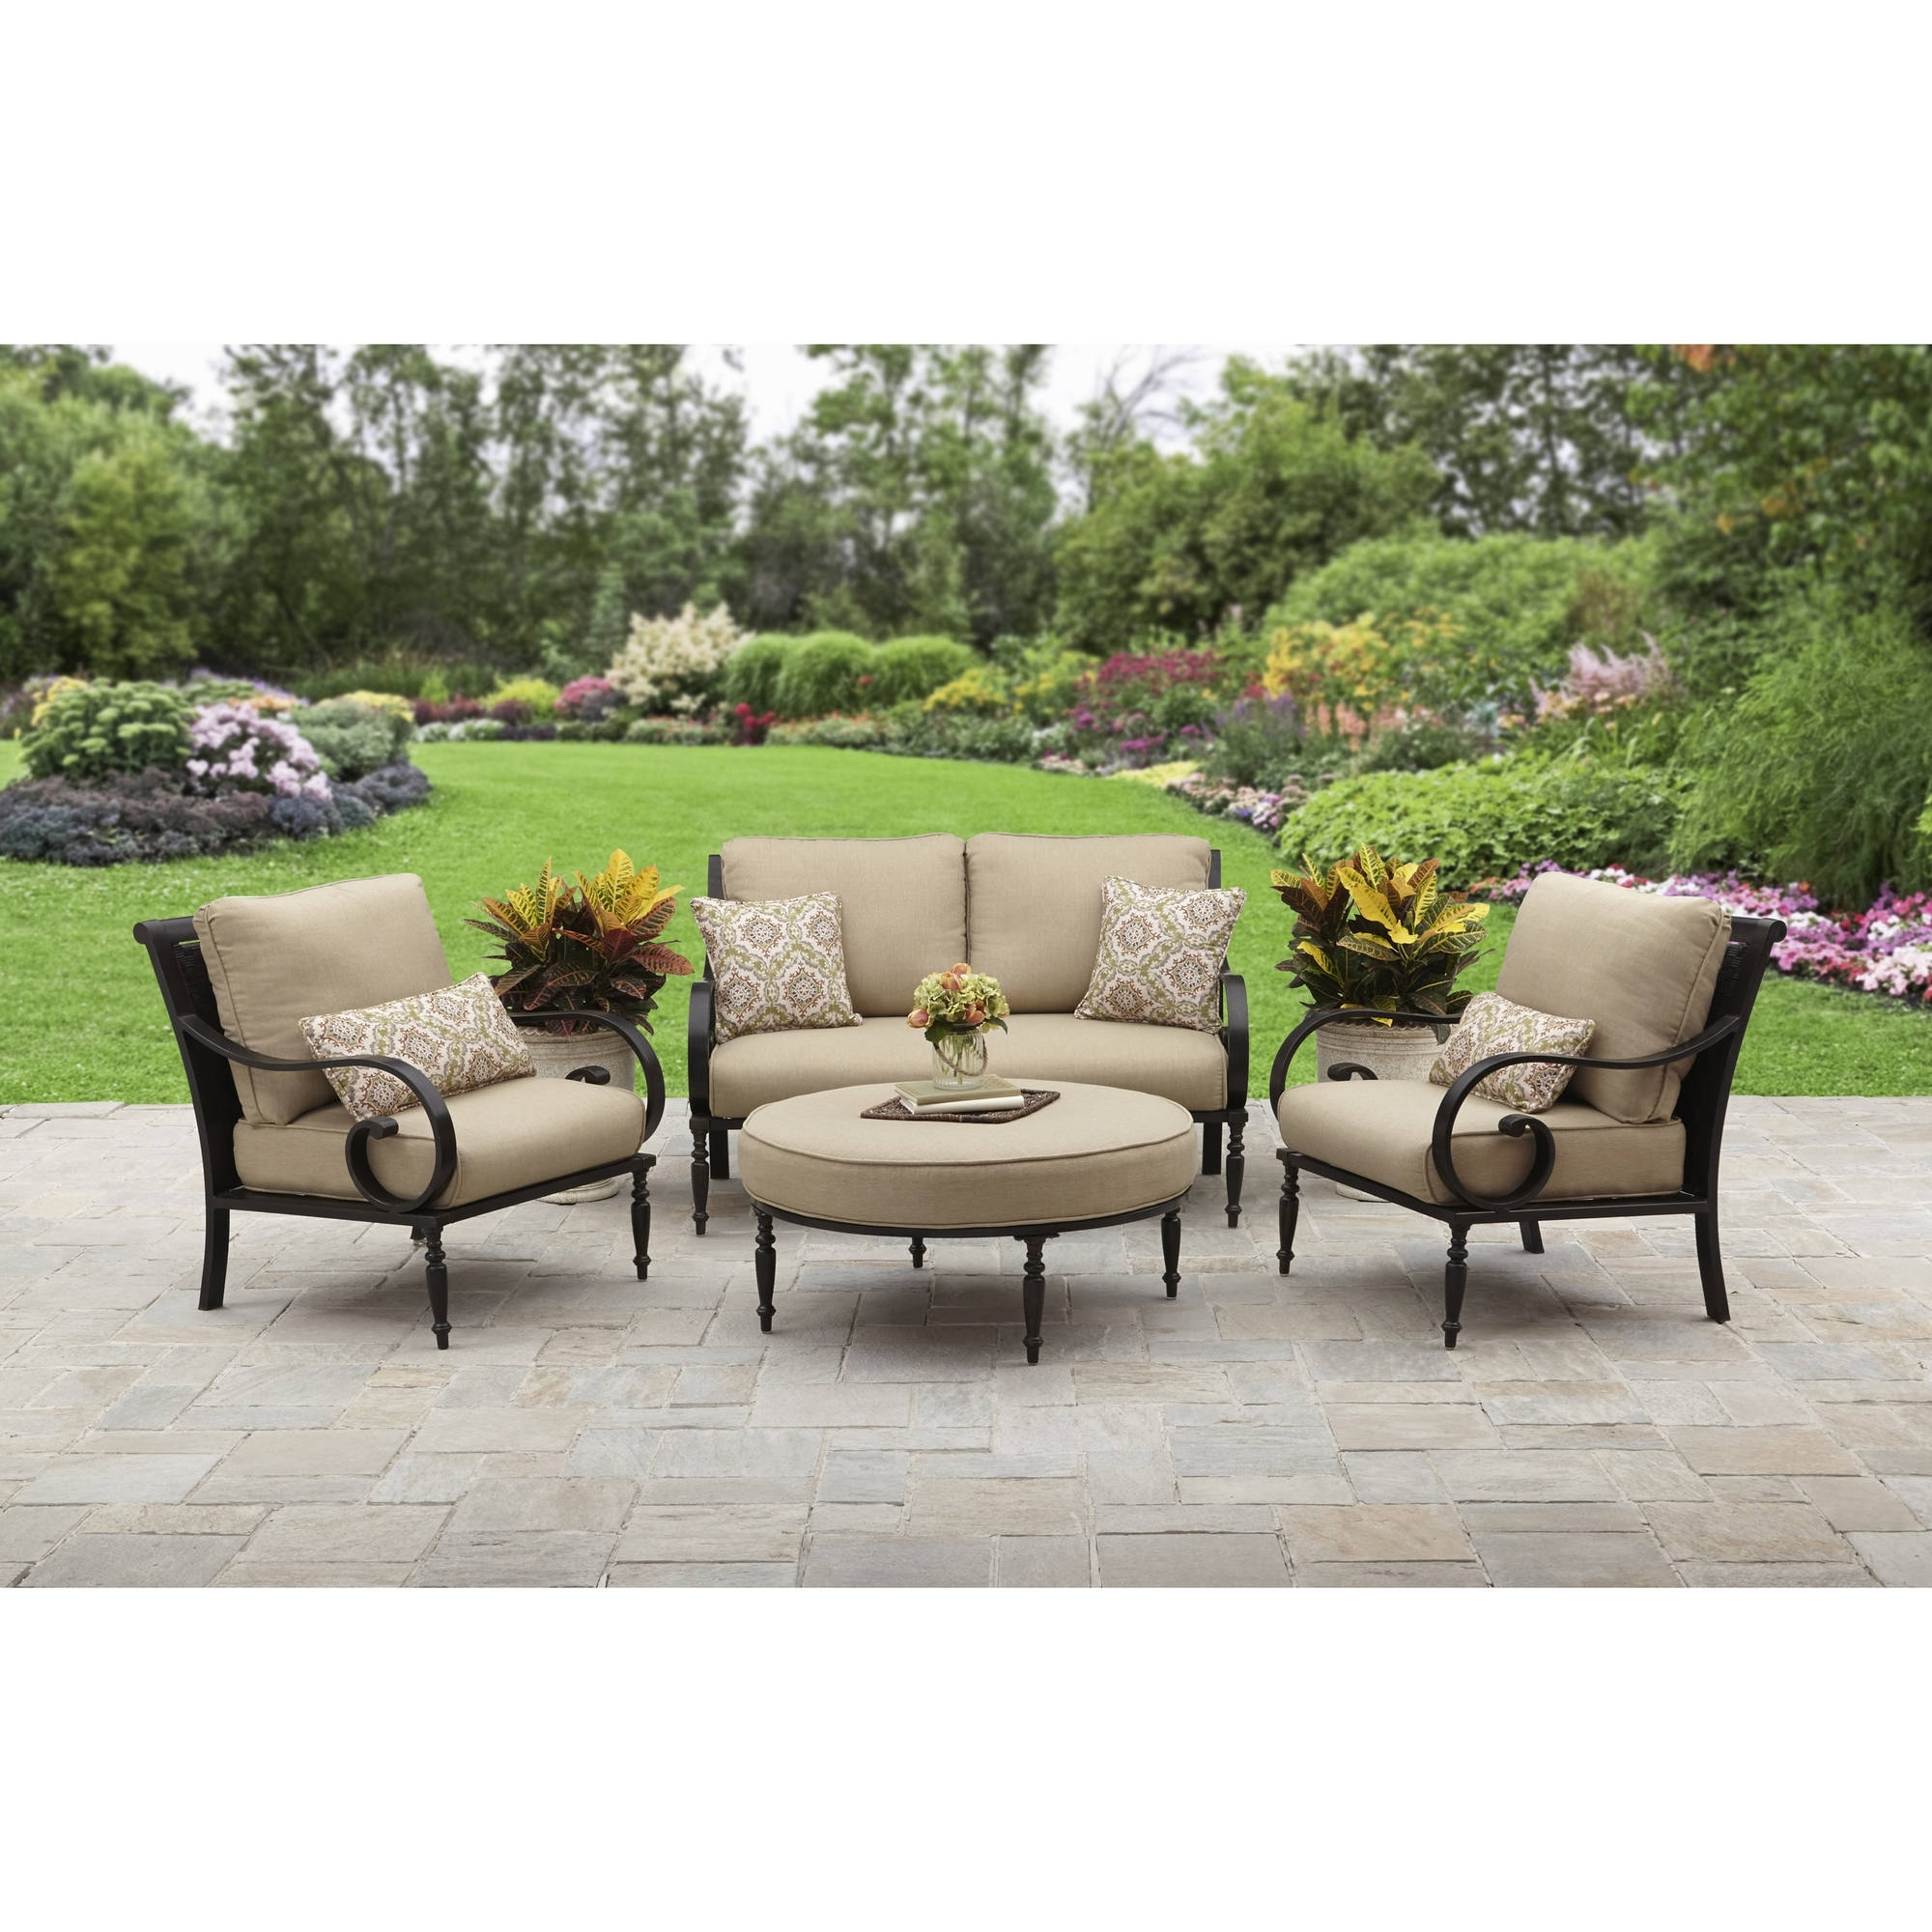 Patio Conversation Sets Without Cushions Intended For Newest Better Homes And Gardens Englewood Heights Ii Aluminum 4 Piece (View 10 of 20)